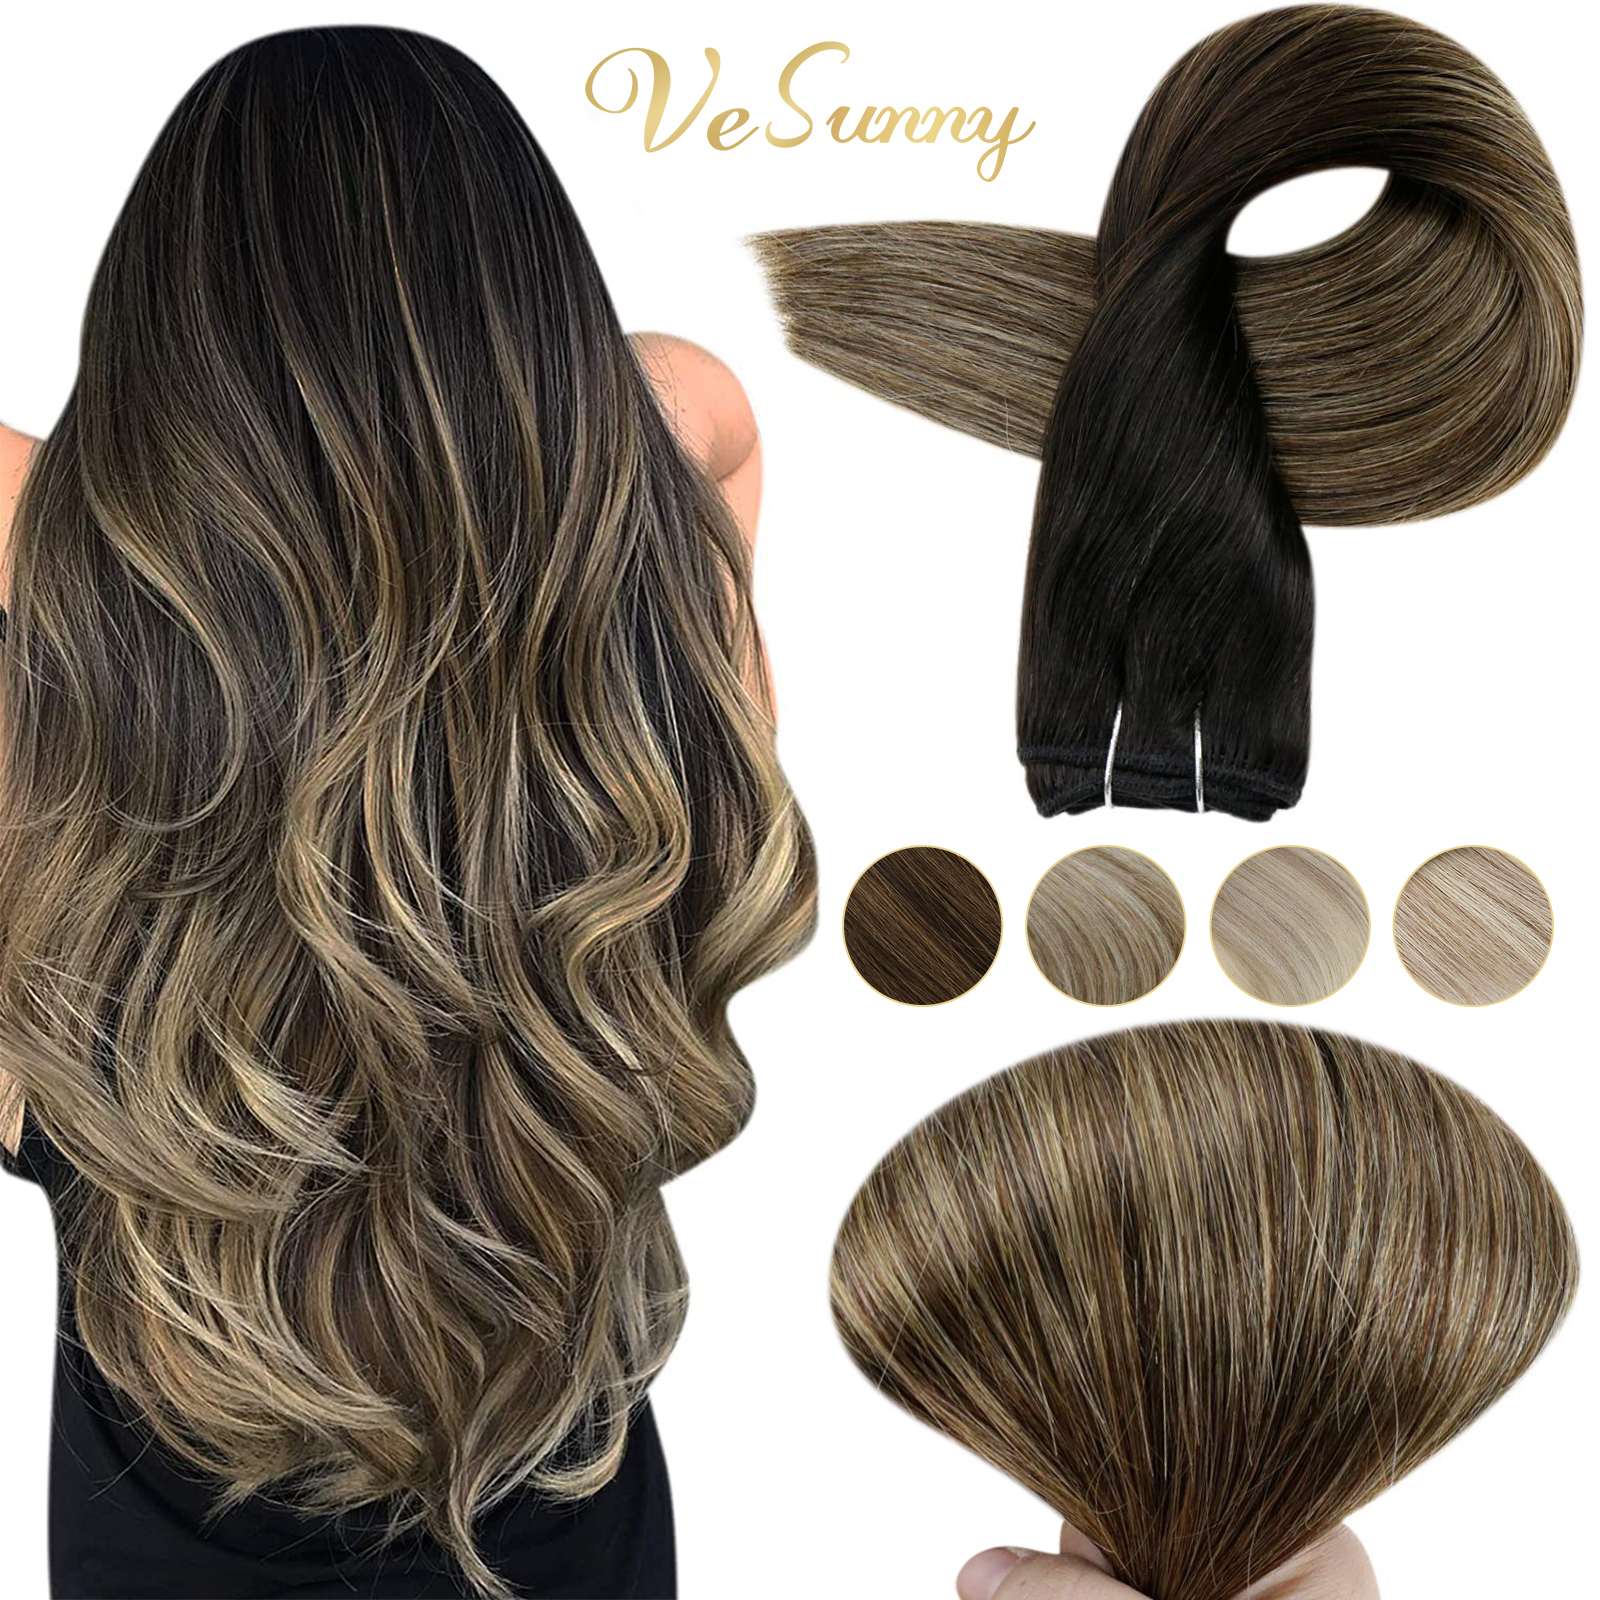 VeSunny Real Hair Weft Bundles Remy Weft Hair Extensions Balayage Weave In Hair Extensions Sew In Hair Extensions 100g  #1b/6/27